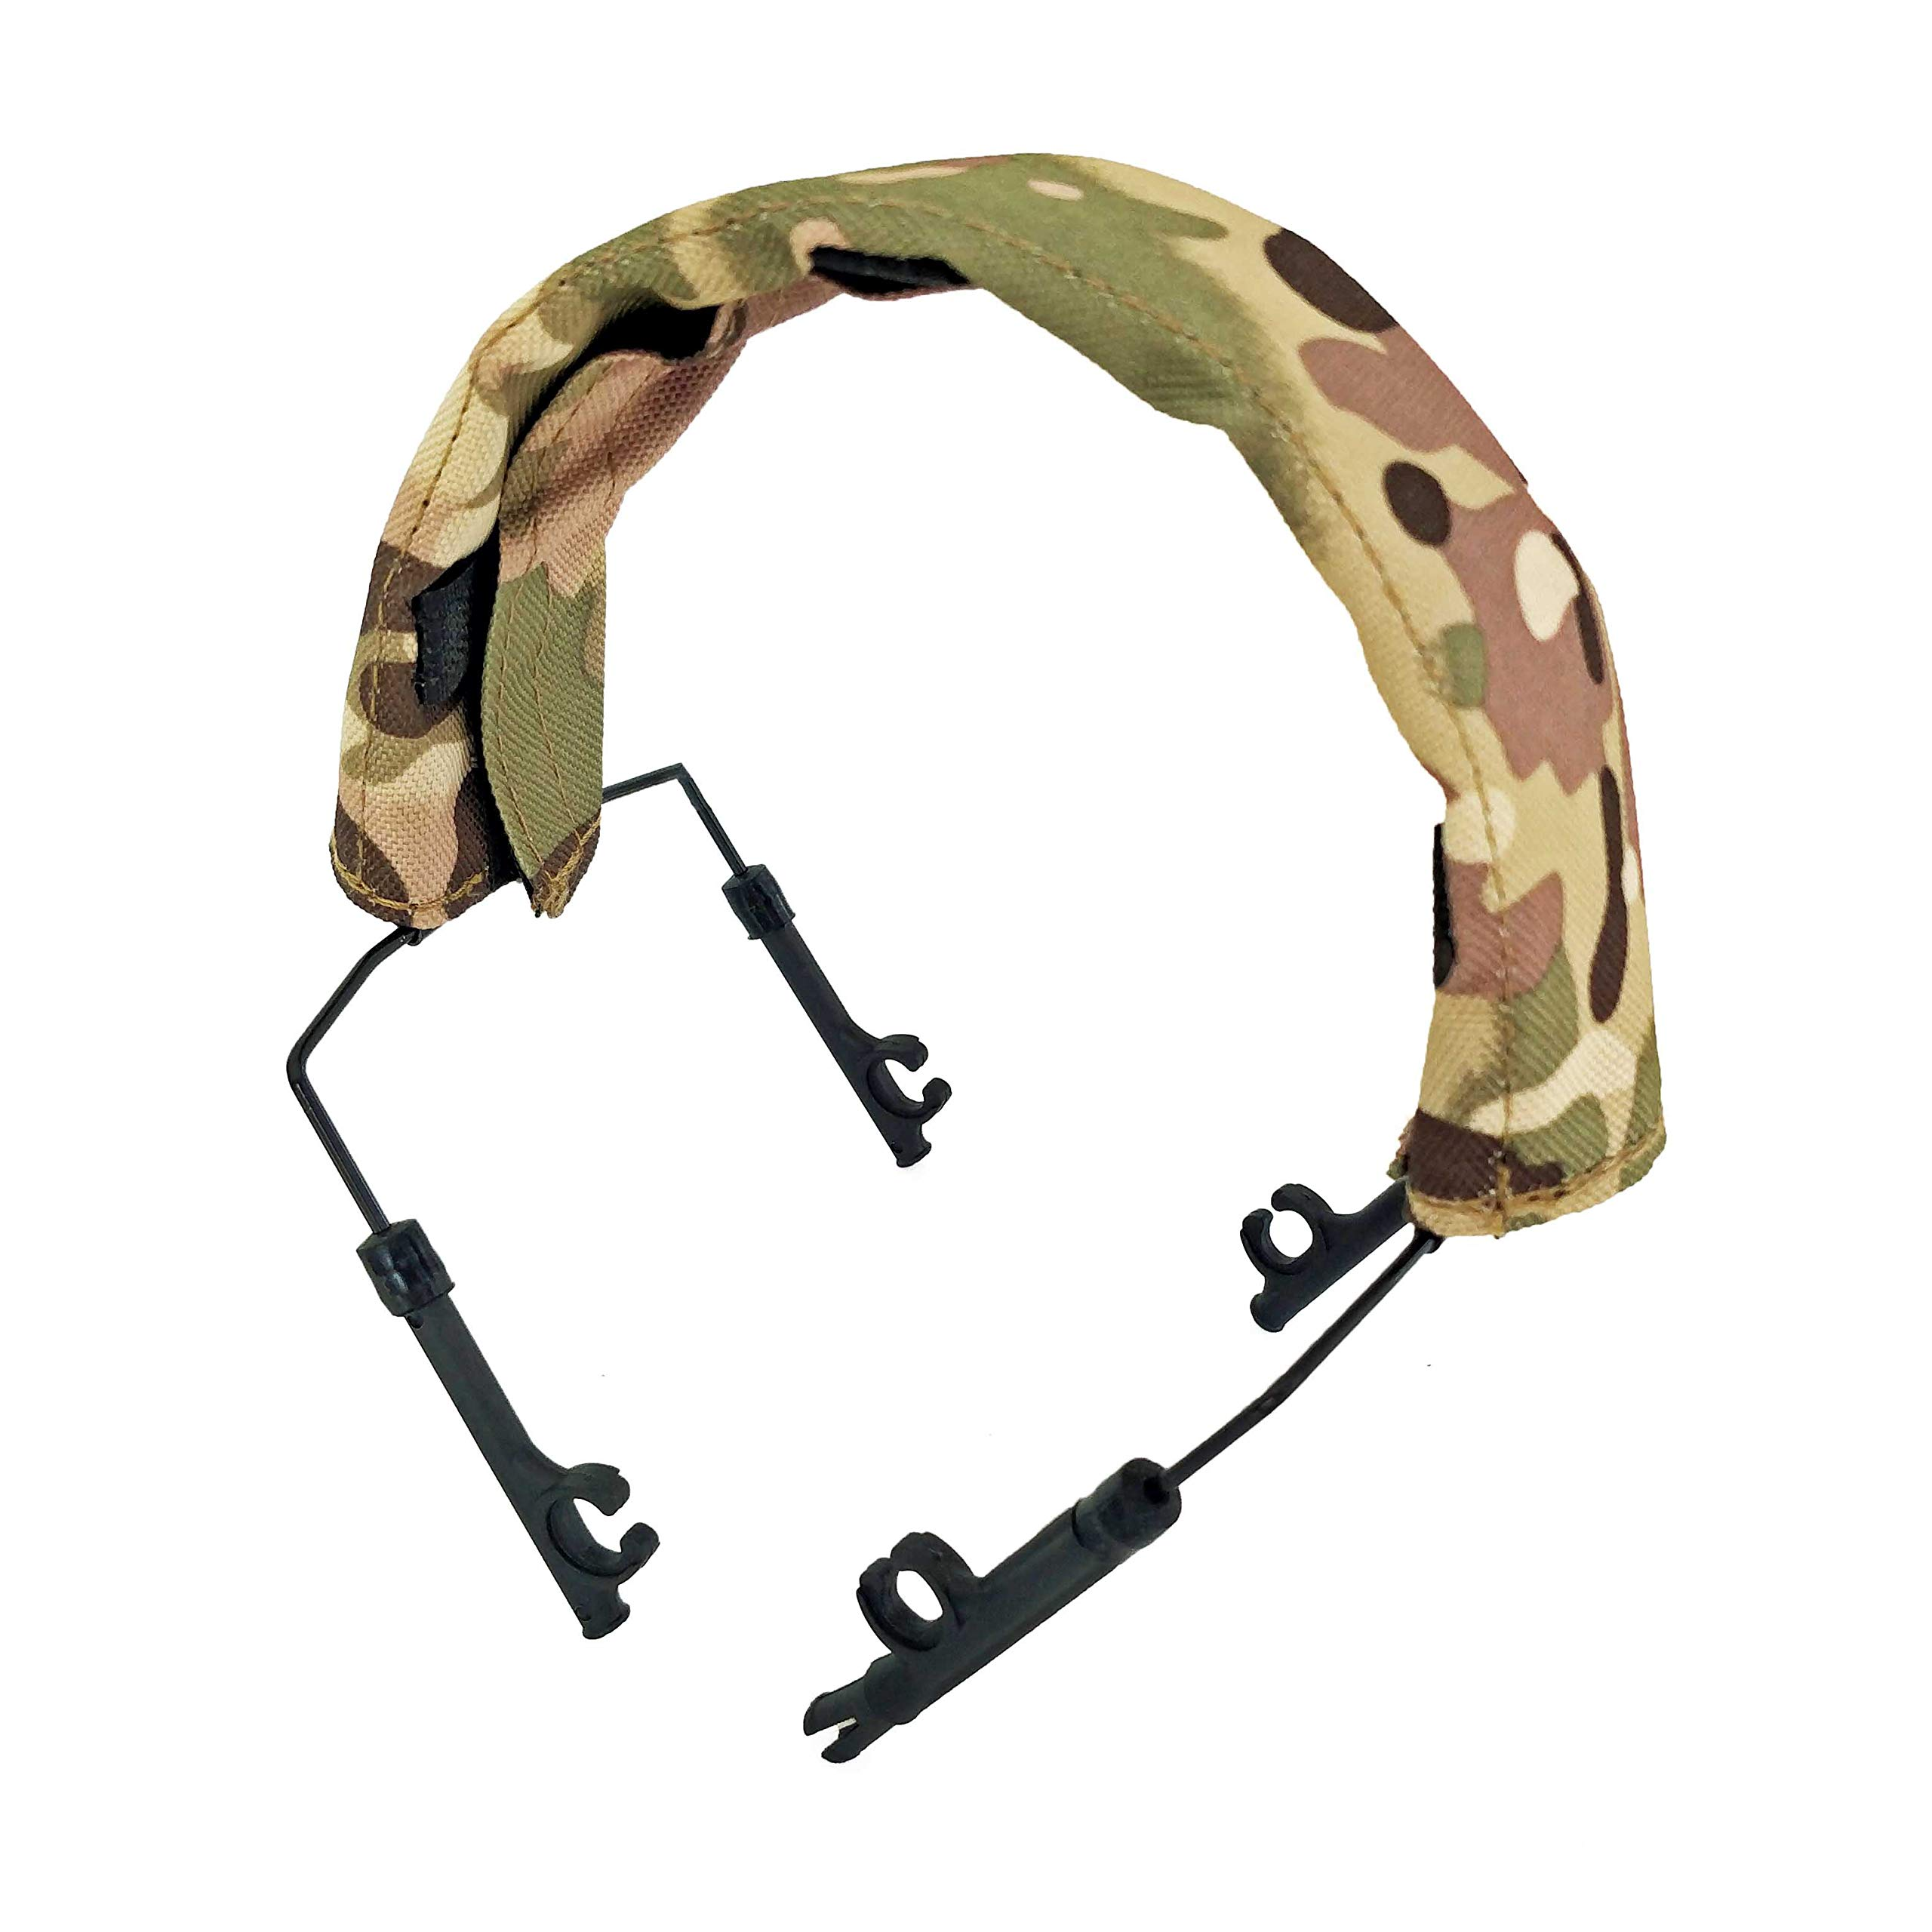 Armorwerx Replacement Headband for Peltor Comtac Ear Muffs by Armorwerx